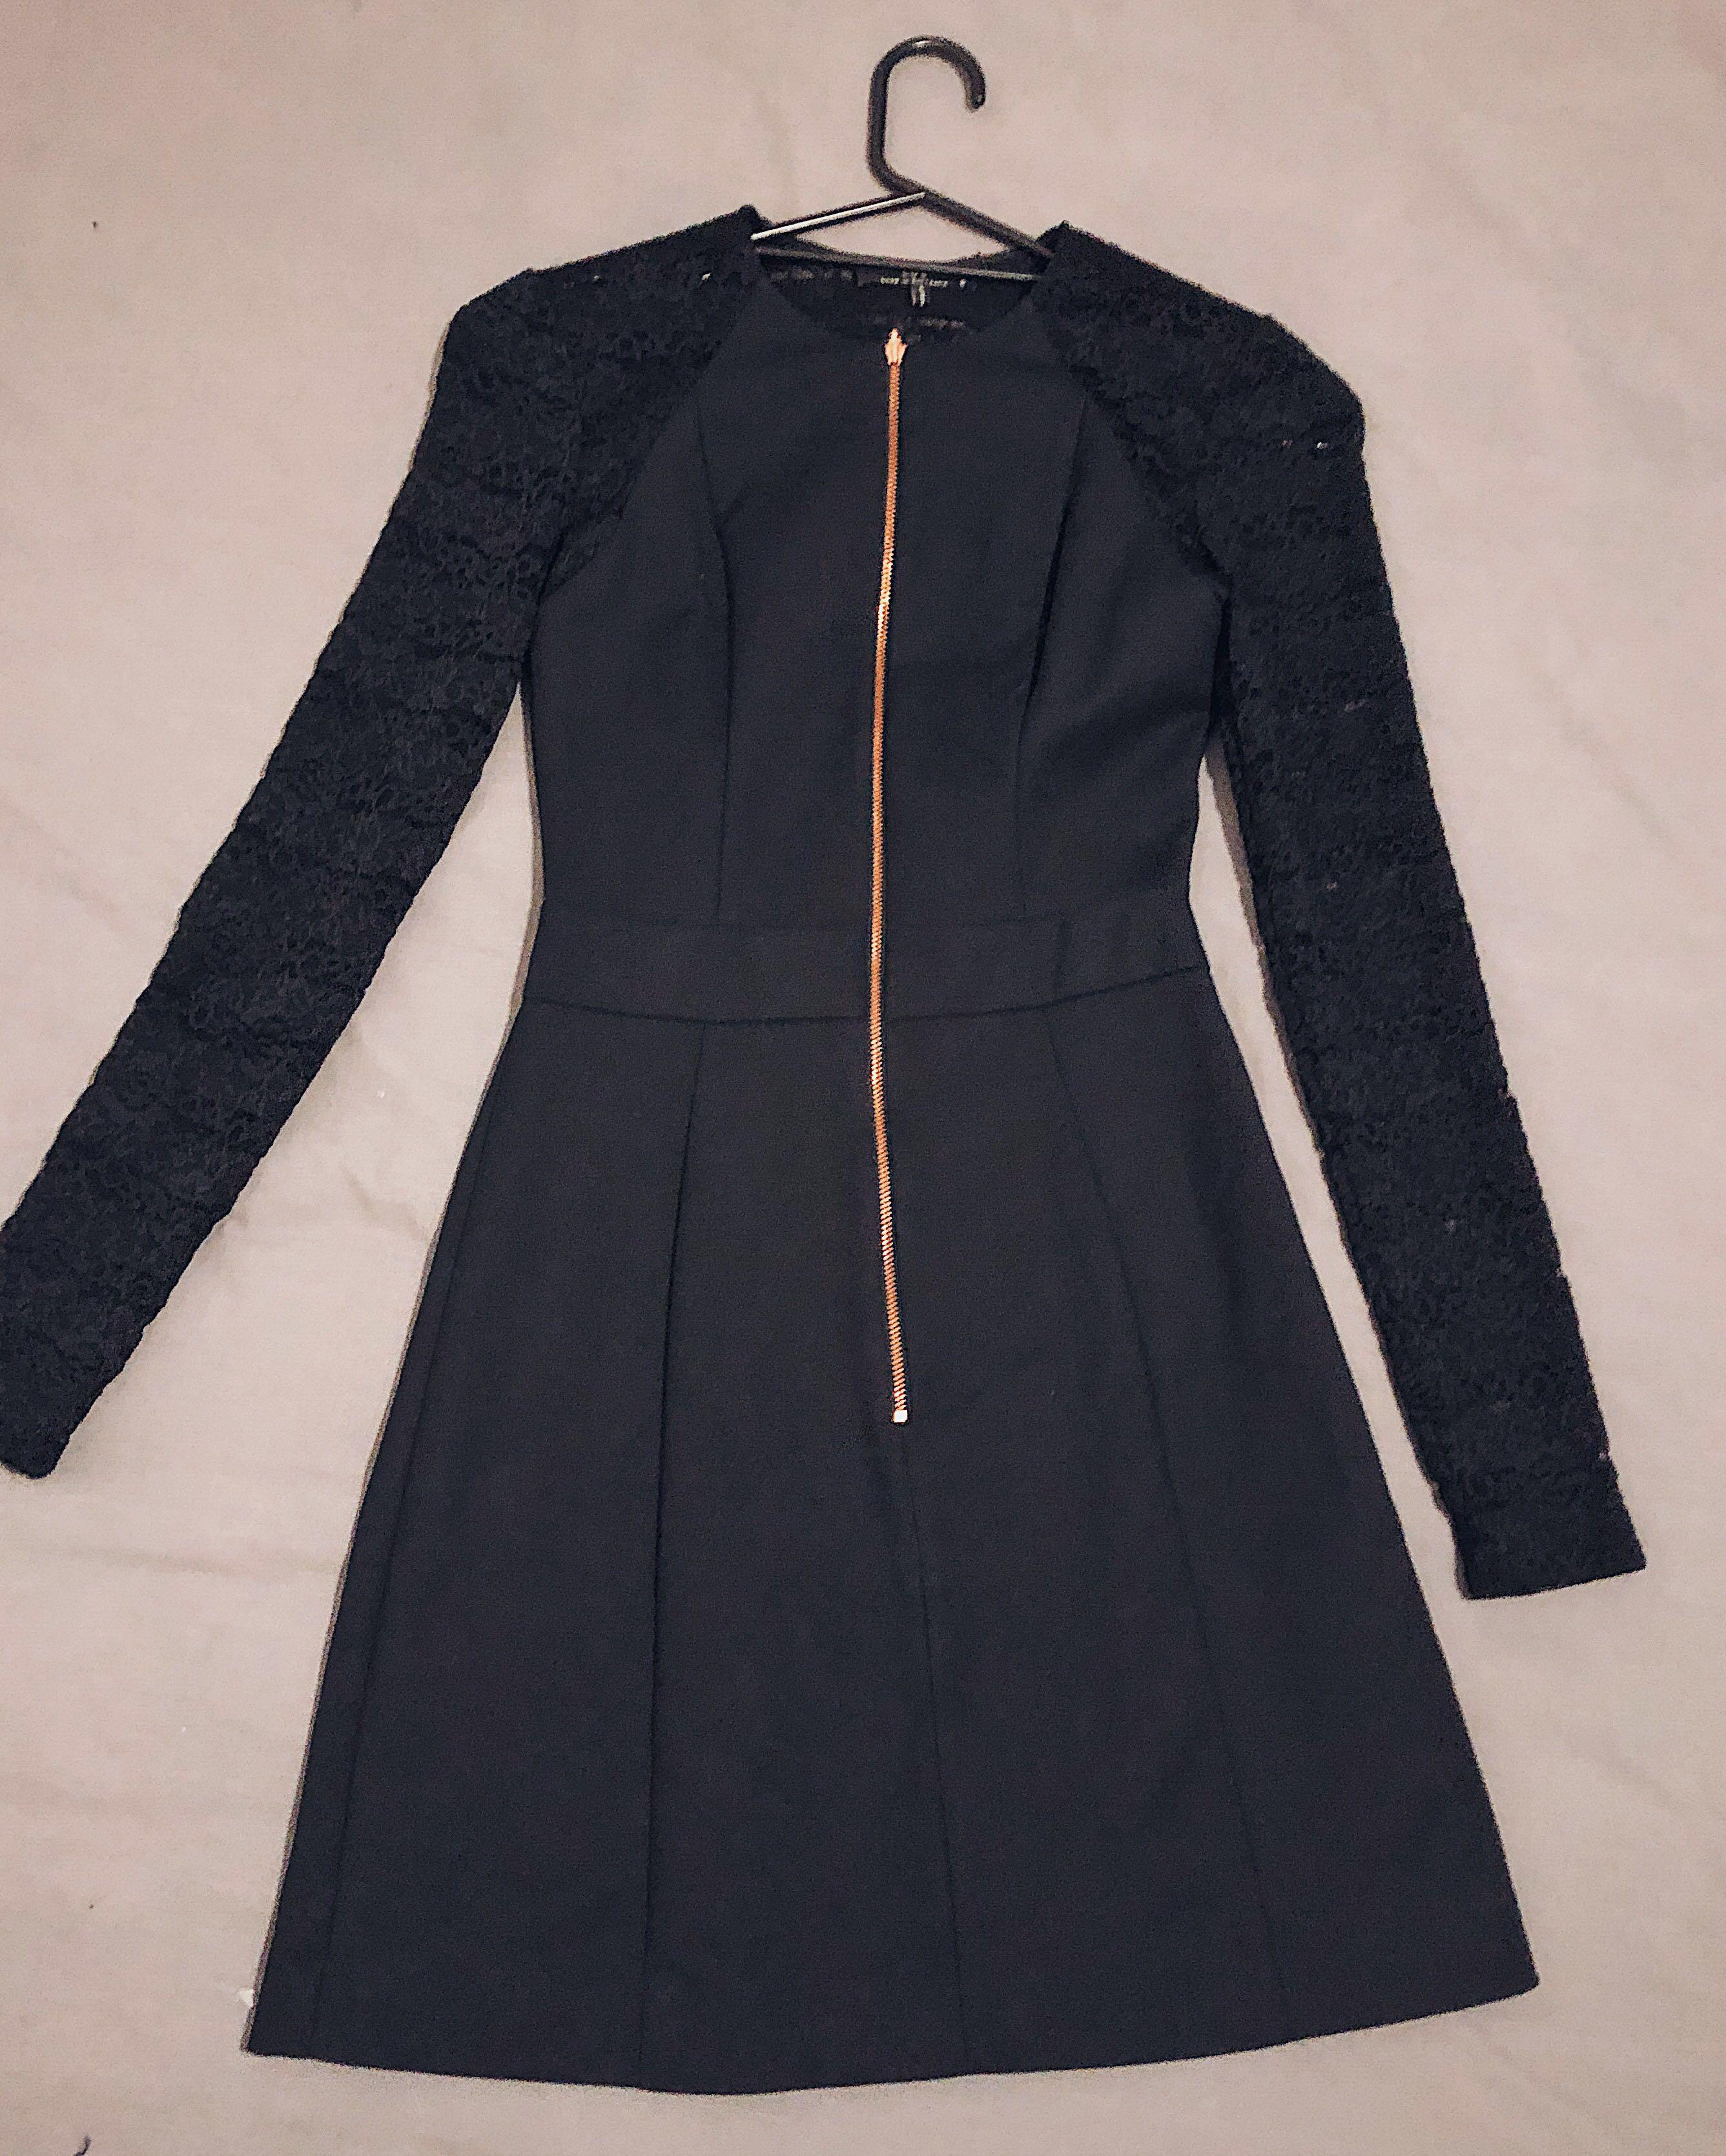 Cue Long Sleeve Dress in Black with Lace Detail | WORN ONCE